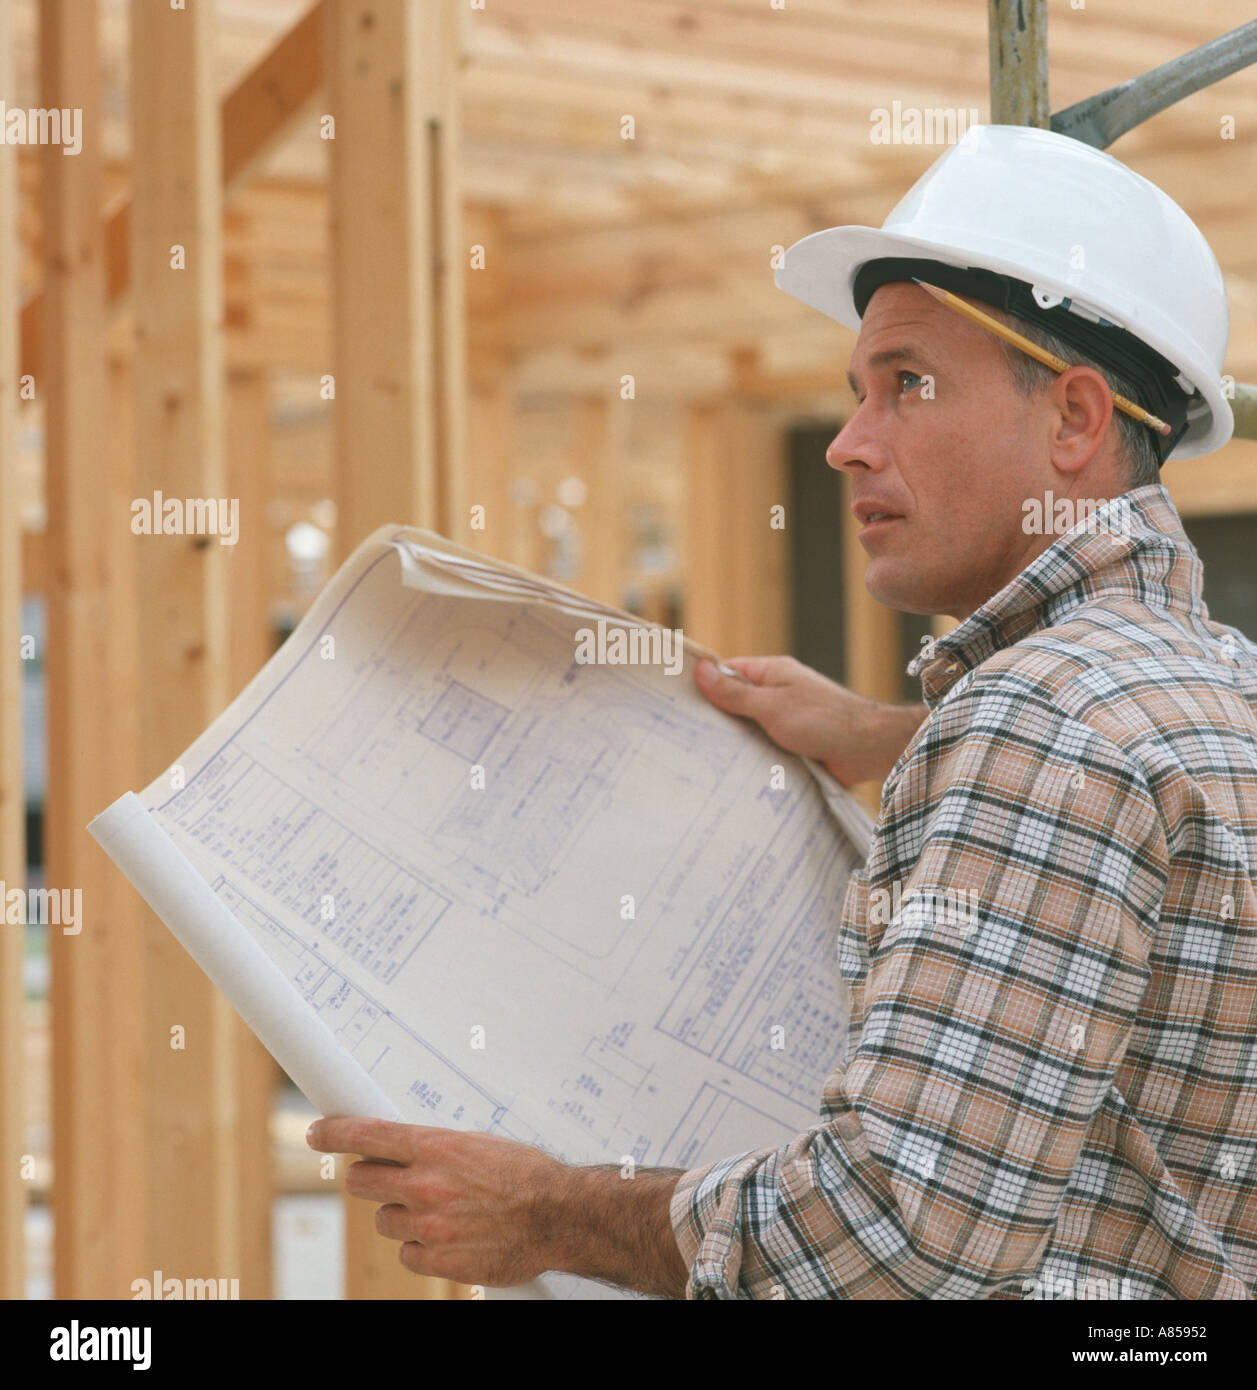 architect studying building blueprints during construction - Stock Image